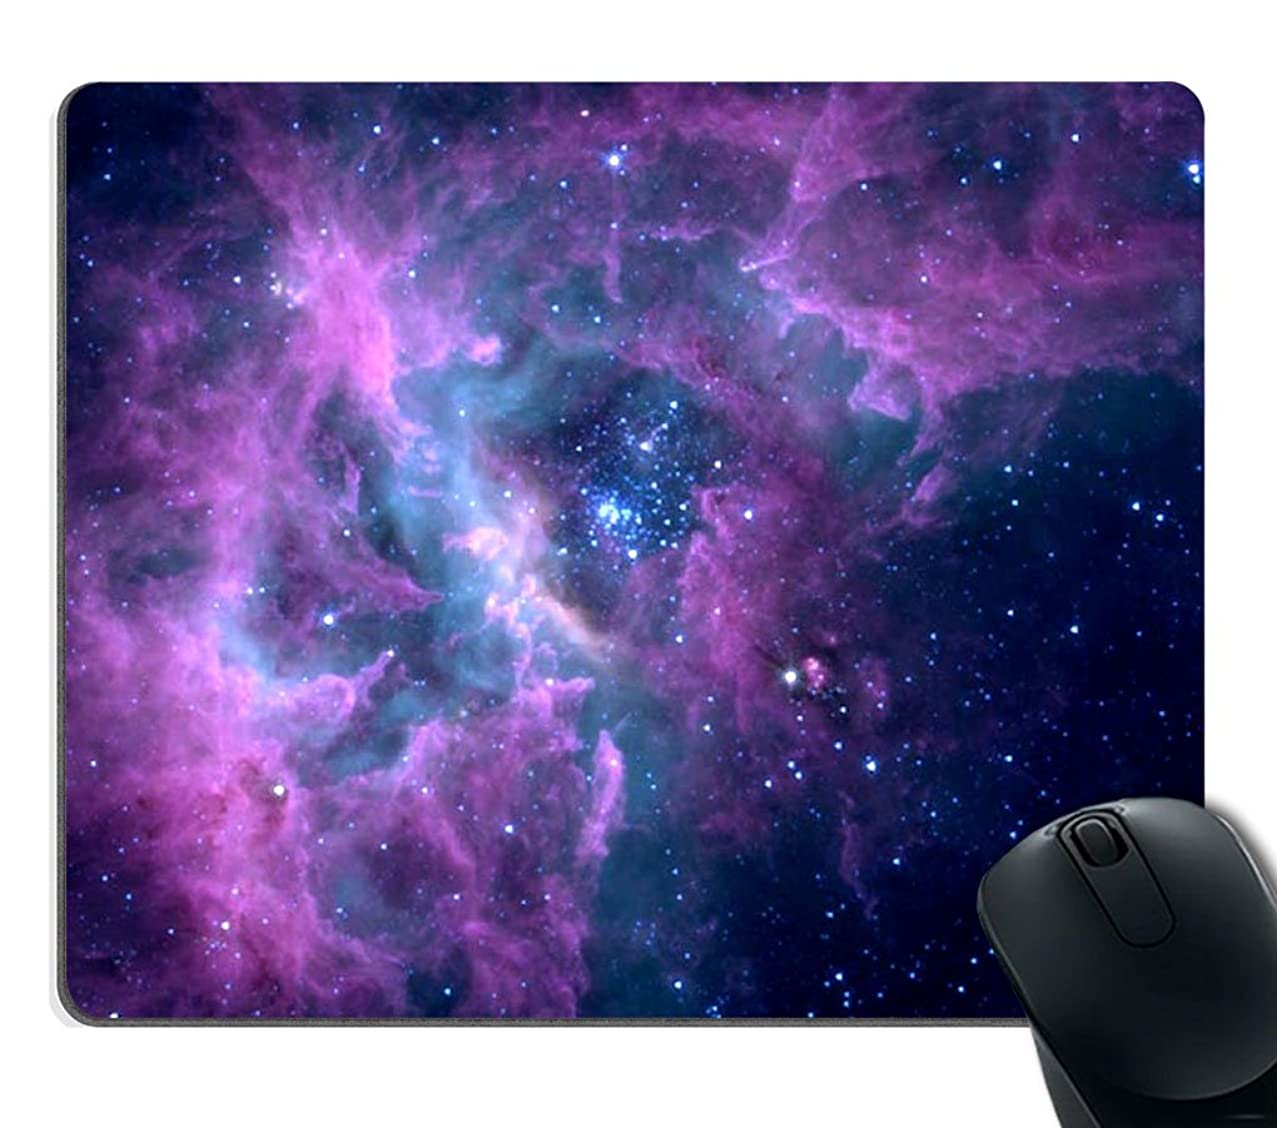 Smooffly Mouse Pad Purple Galaxy Customized Rectangle Non-Slip Rubber Mousepad Gaming Mouse Pad